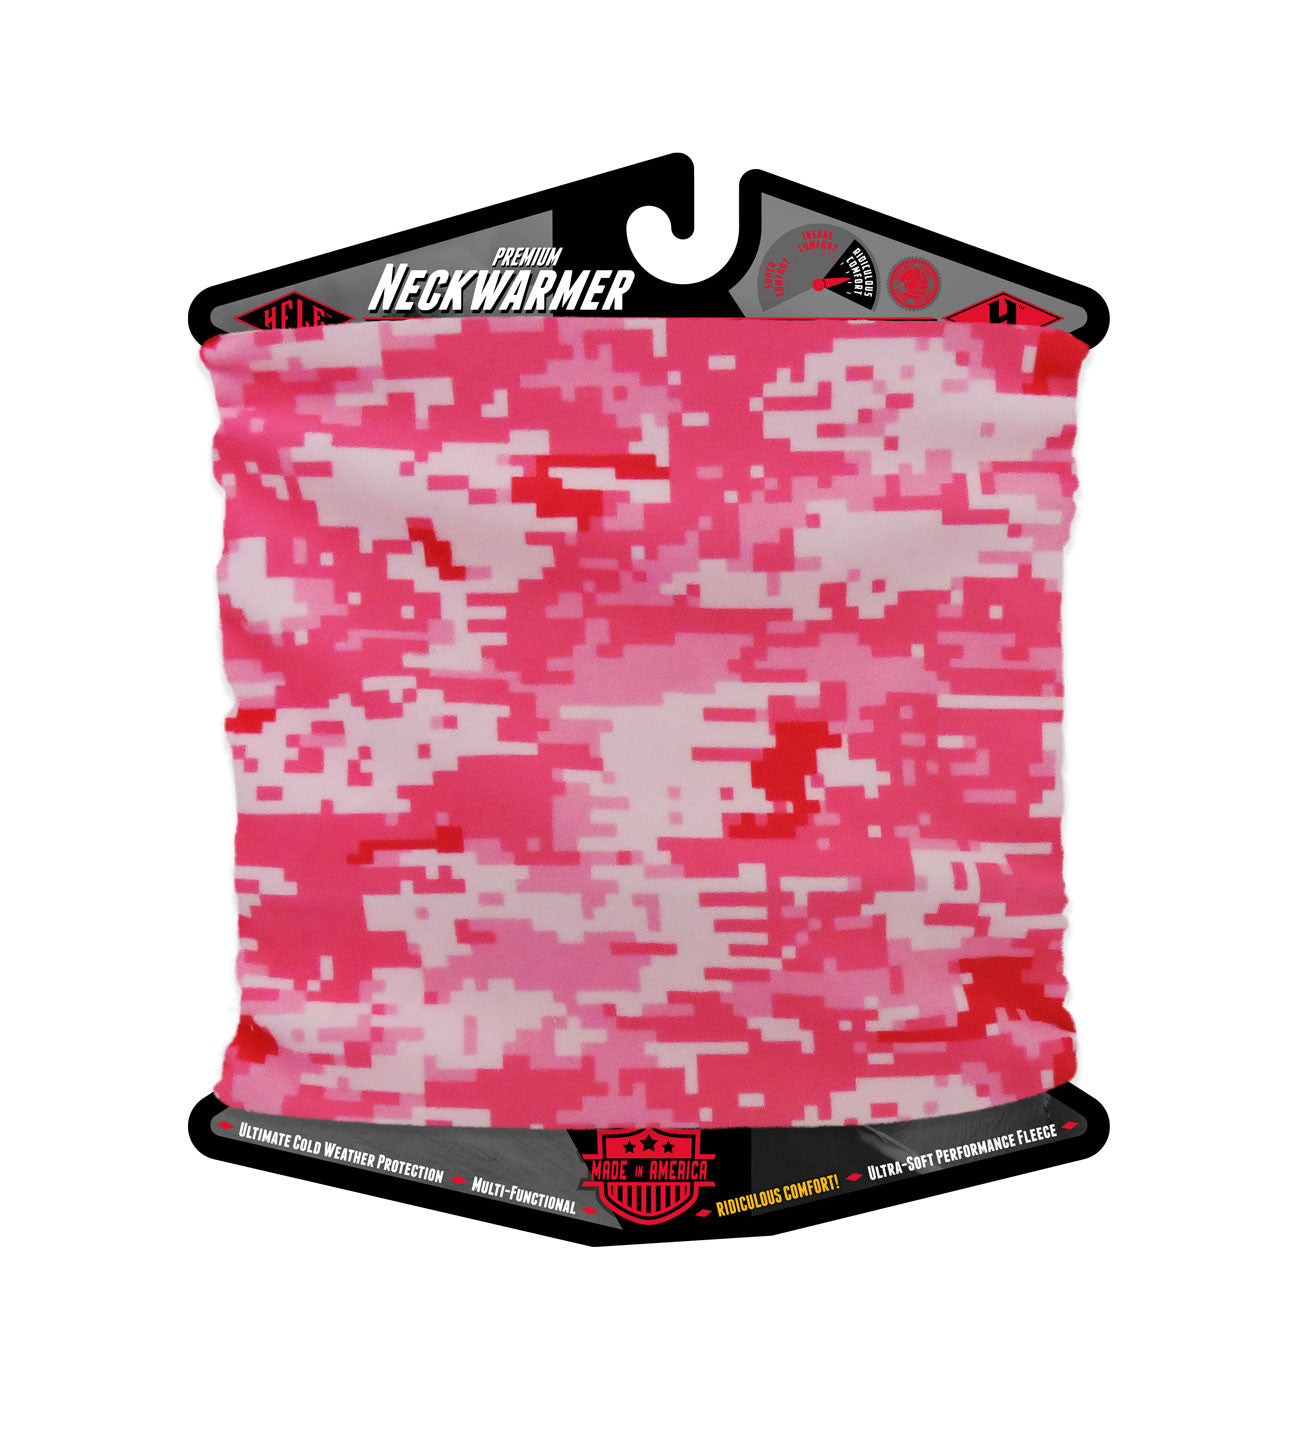 Digital Camo Pink Neckwarmer